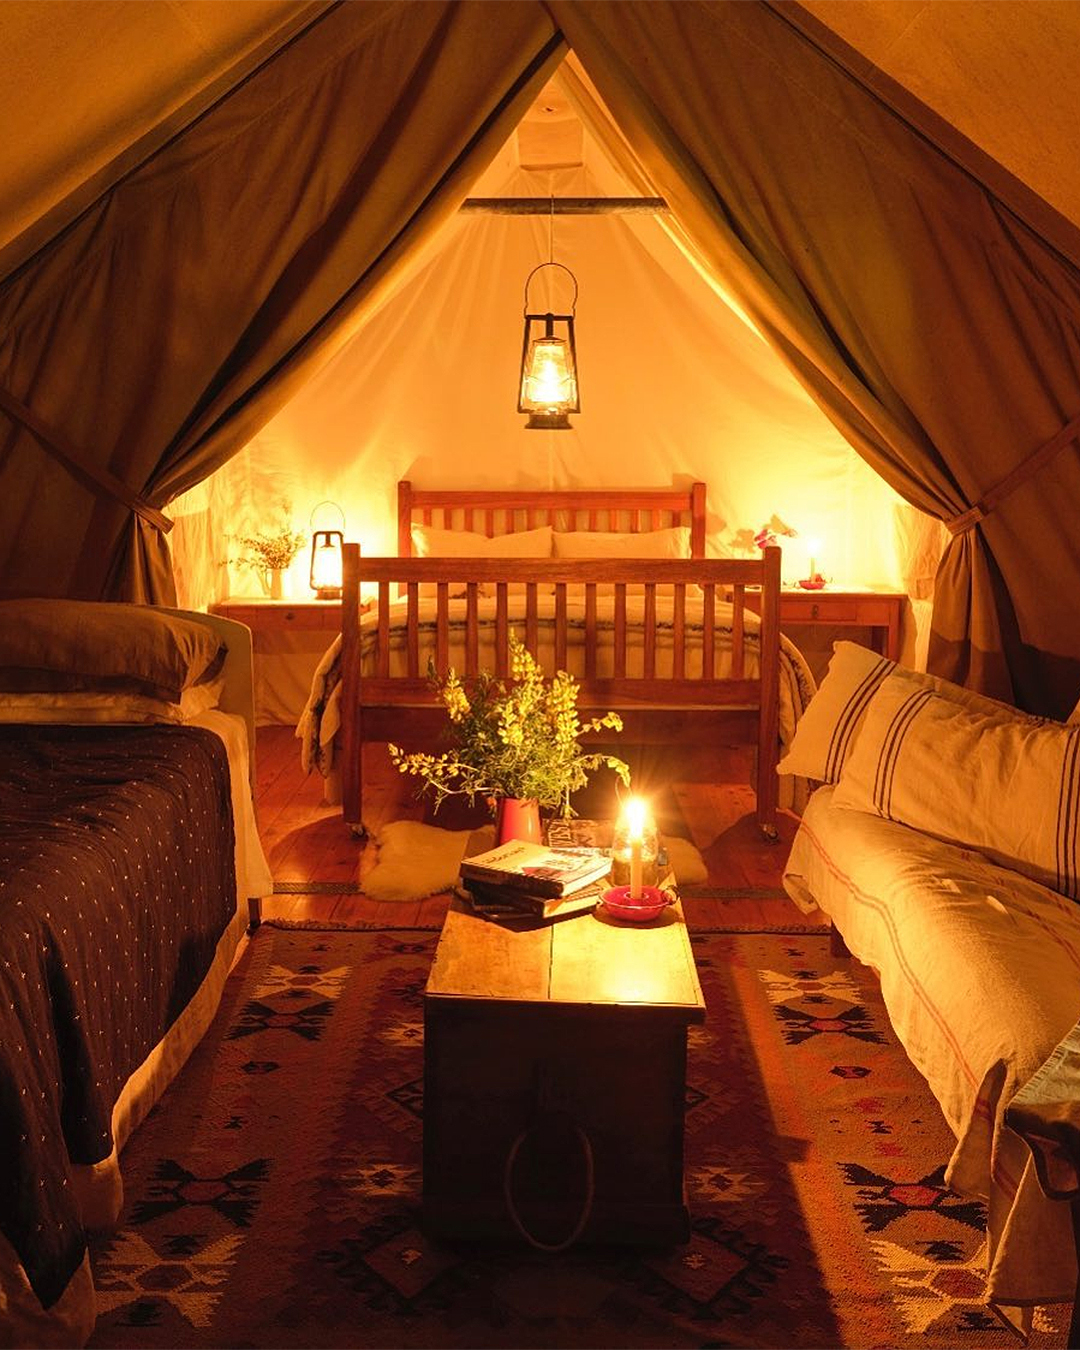 A cosy interior of the luxury tents at Wainamu.